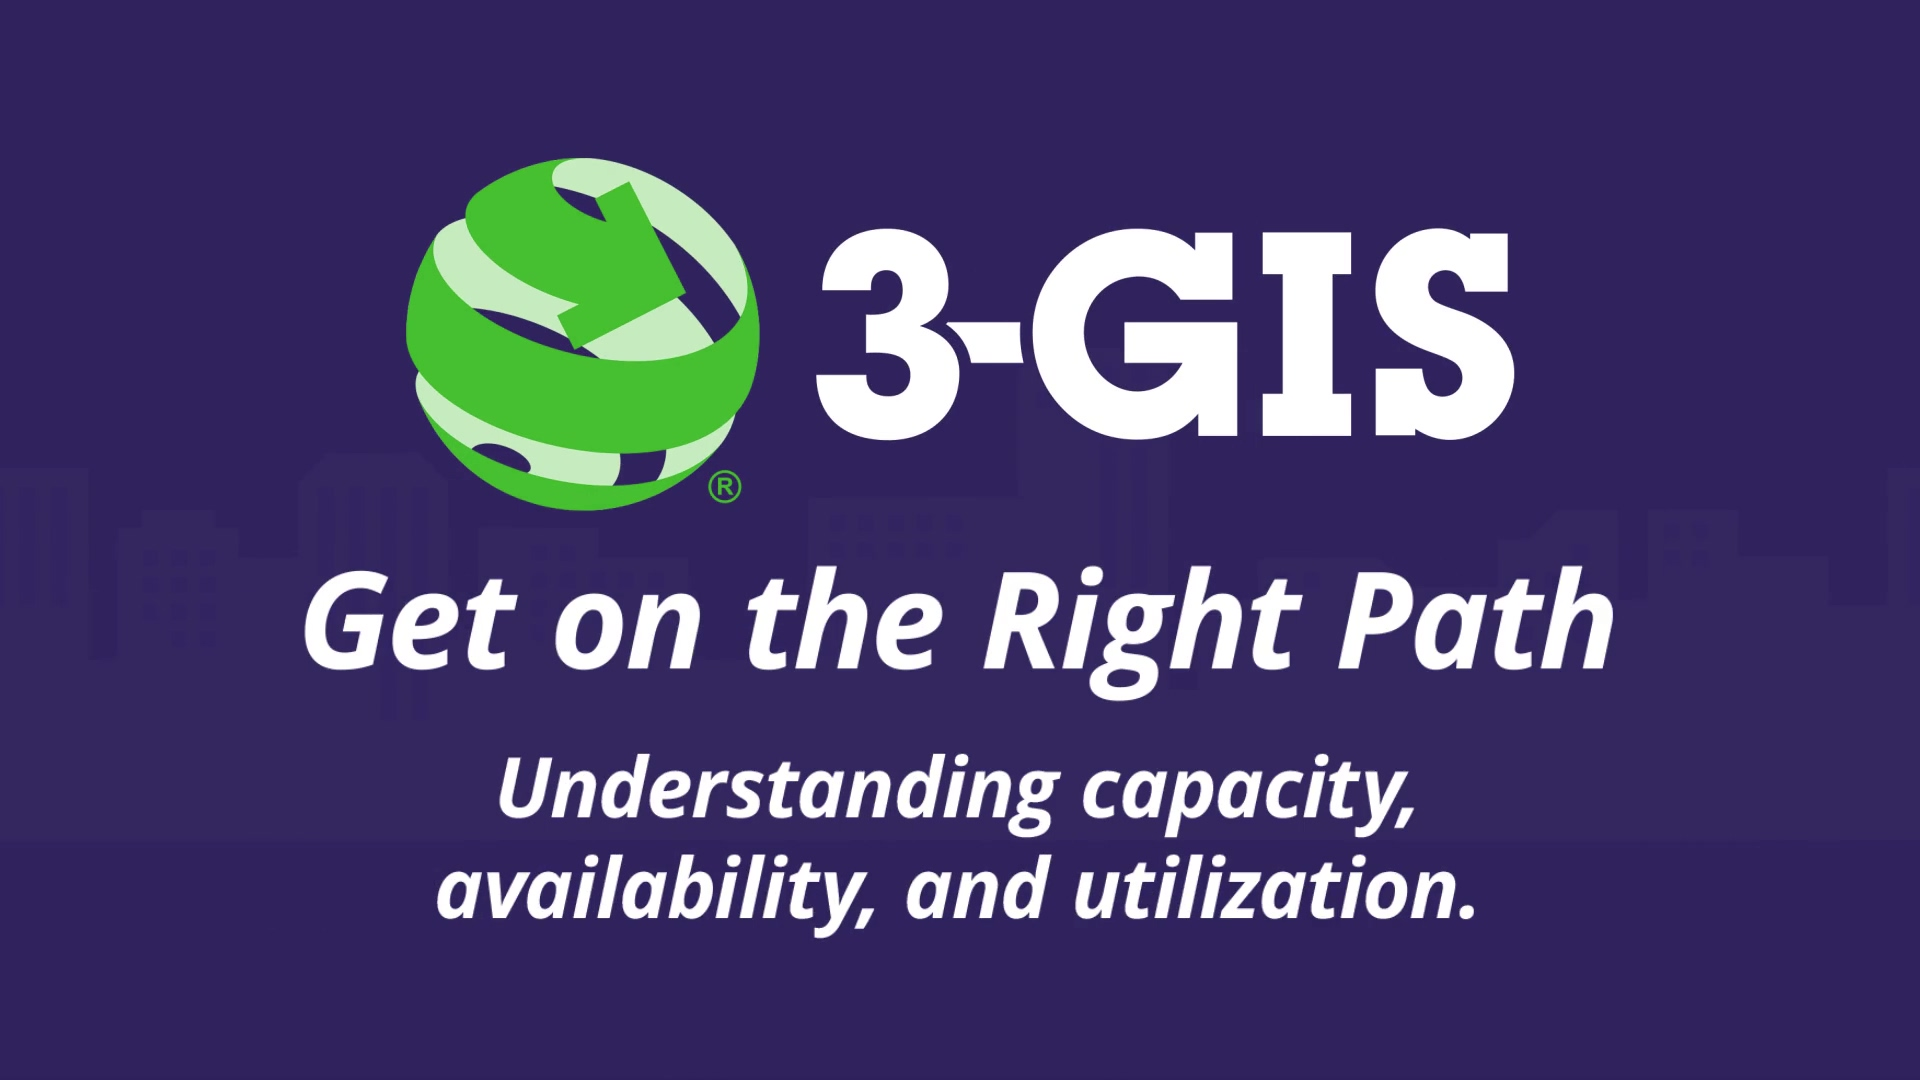 201006-3-GIS-Overview-Get-on-the-Right-Path-1080p